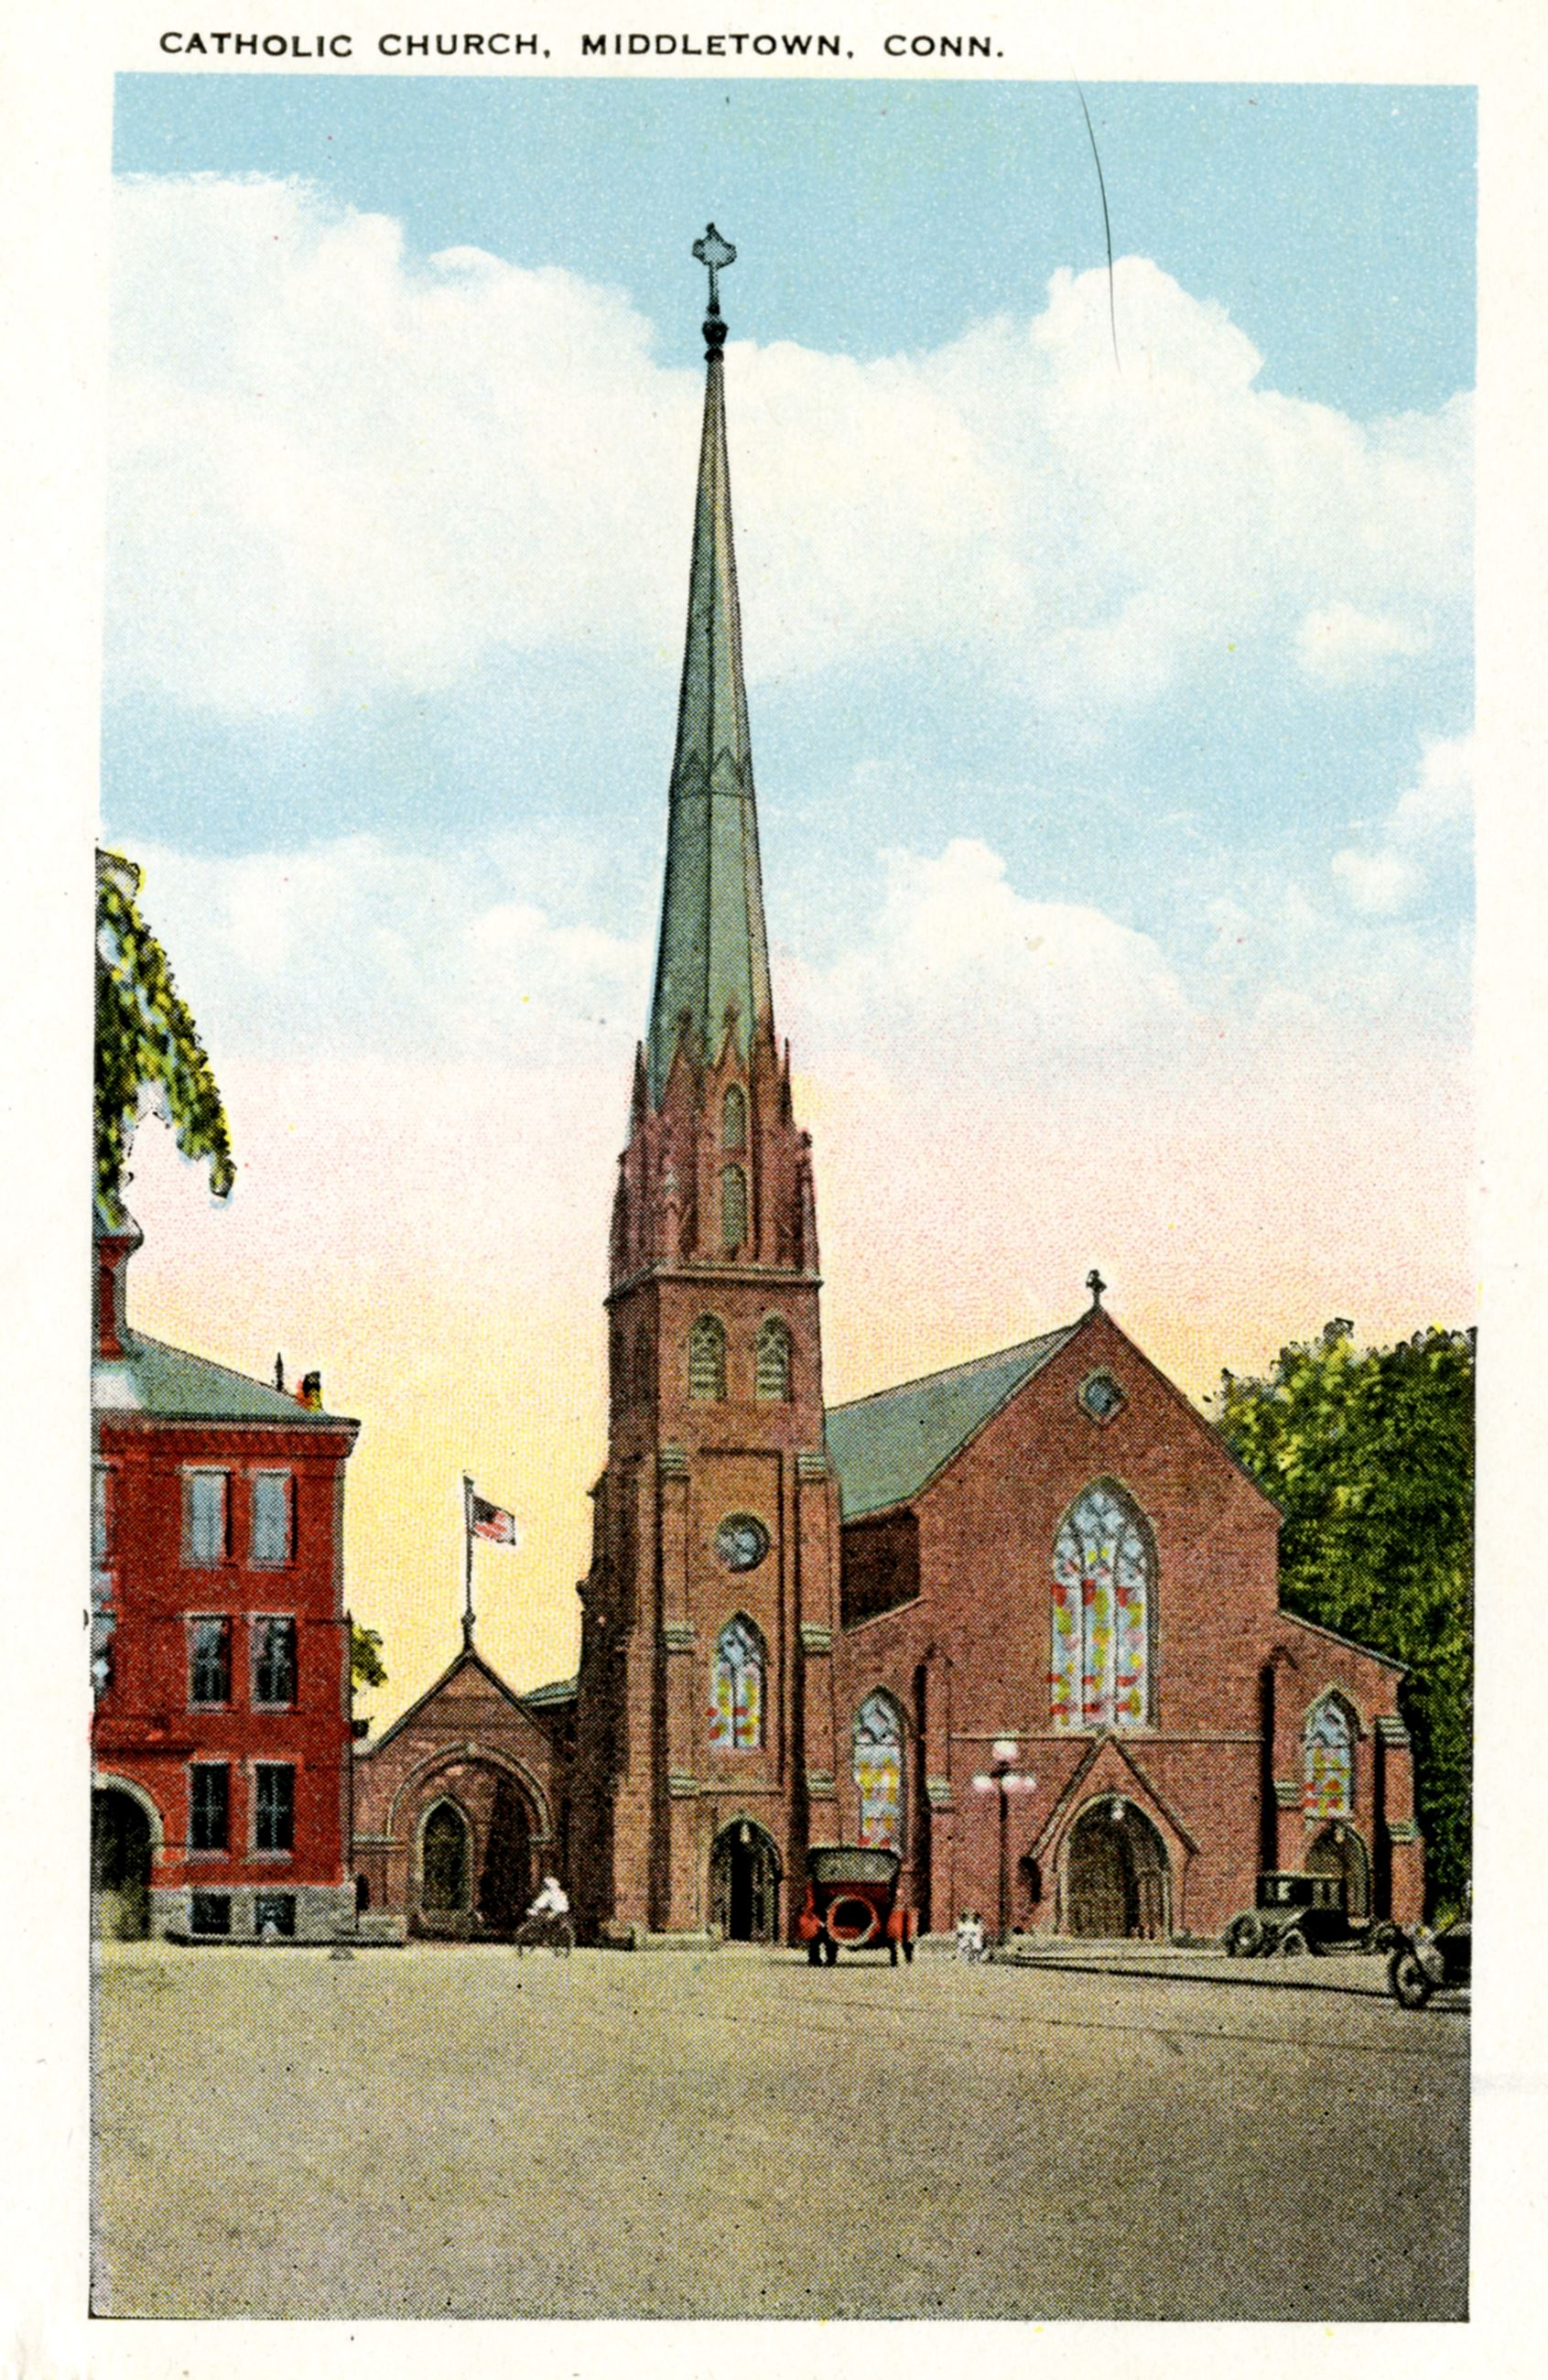 Historical Image of St. John Church